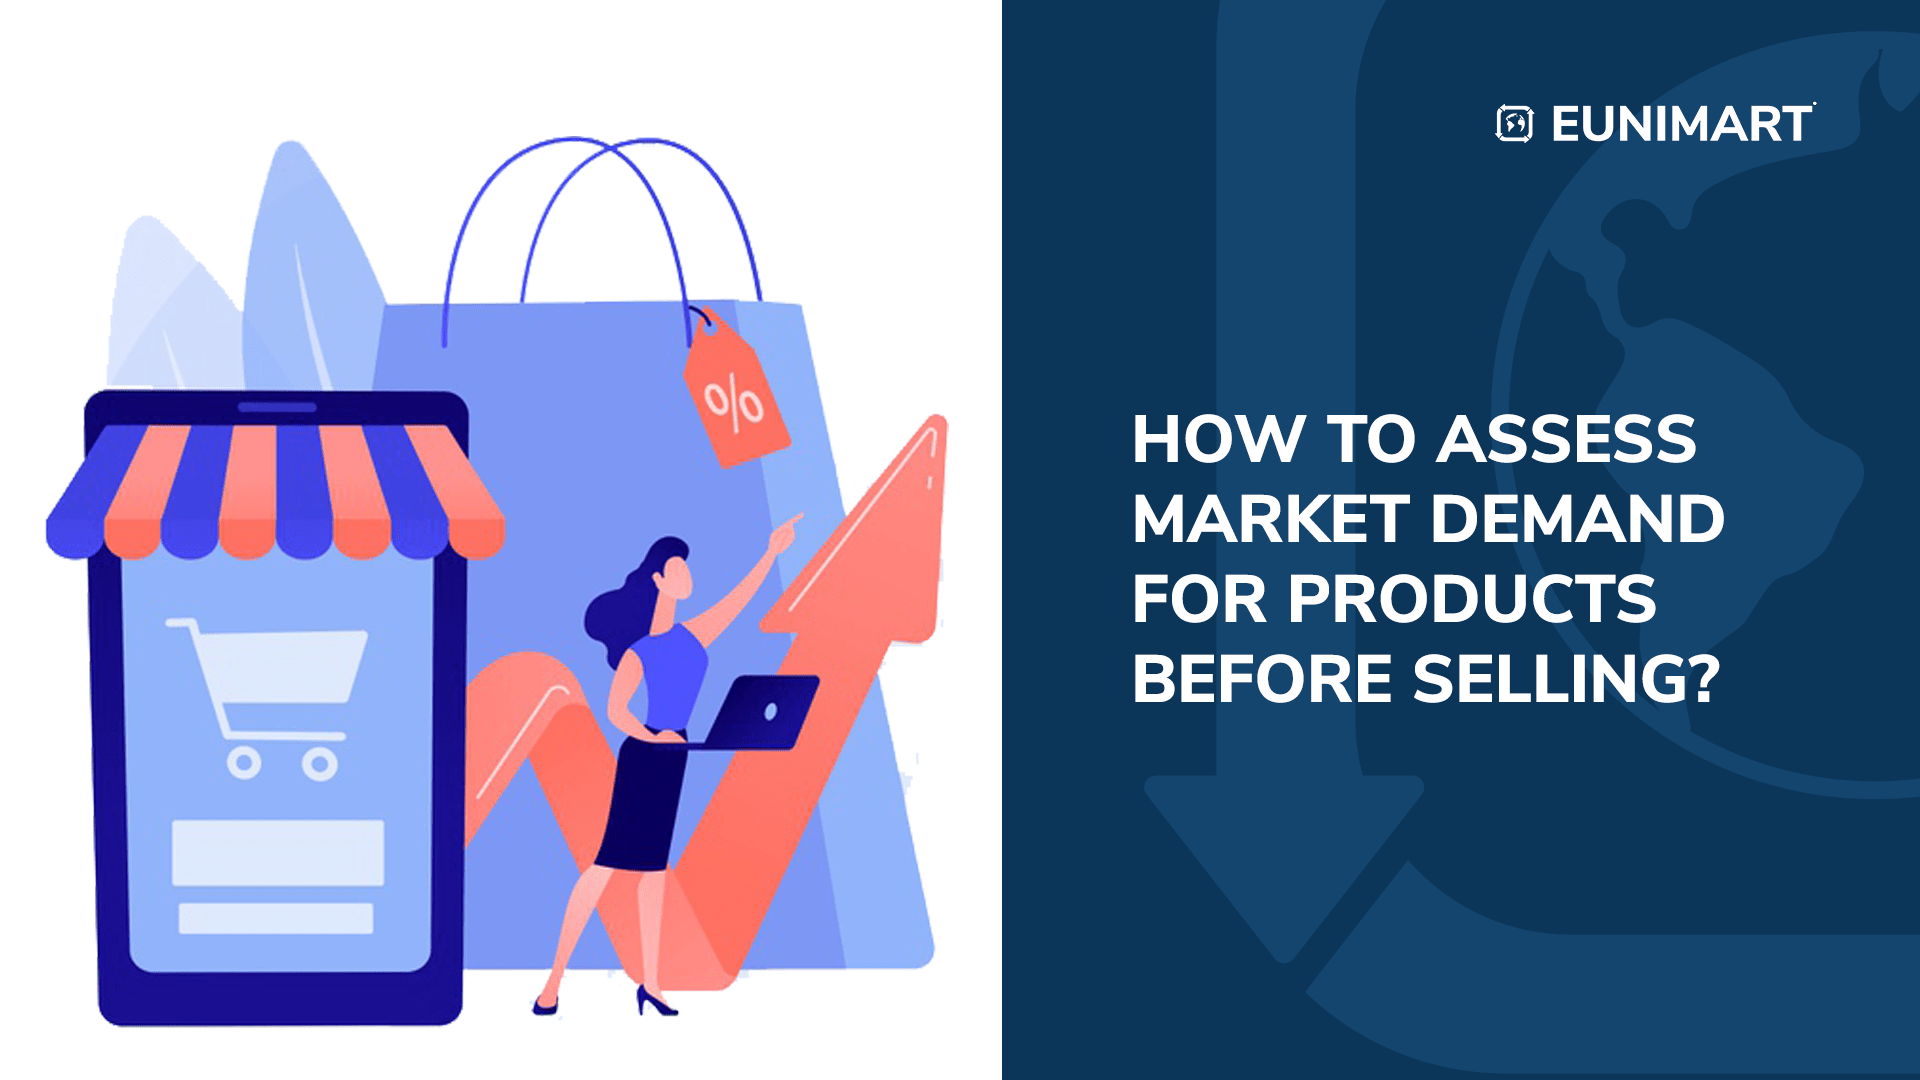 How to Assess Market Demand for Products Before Selling?